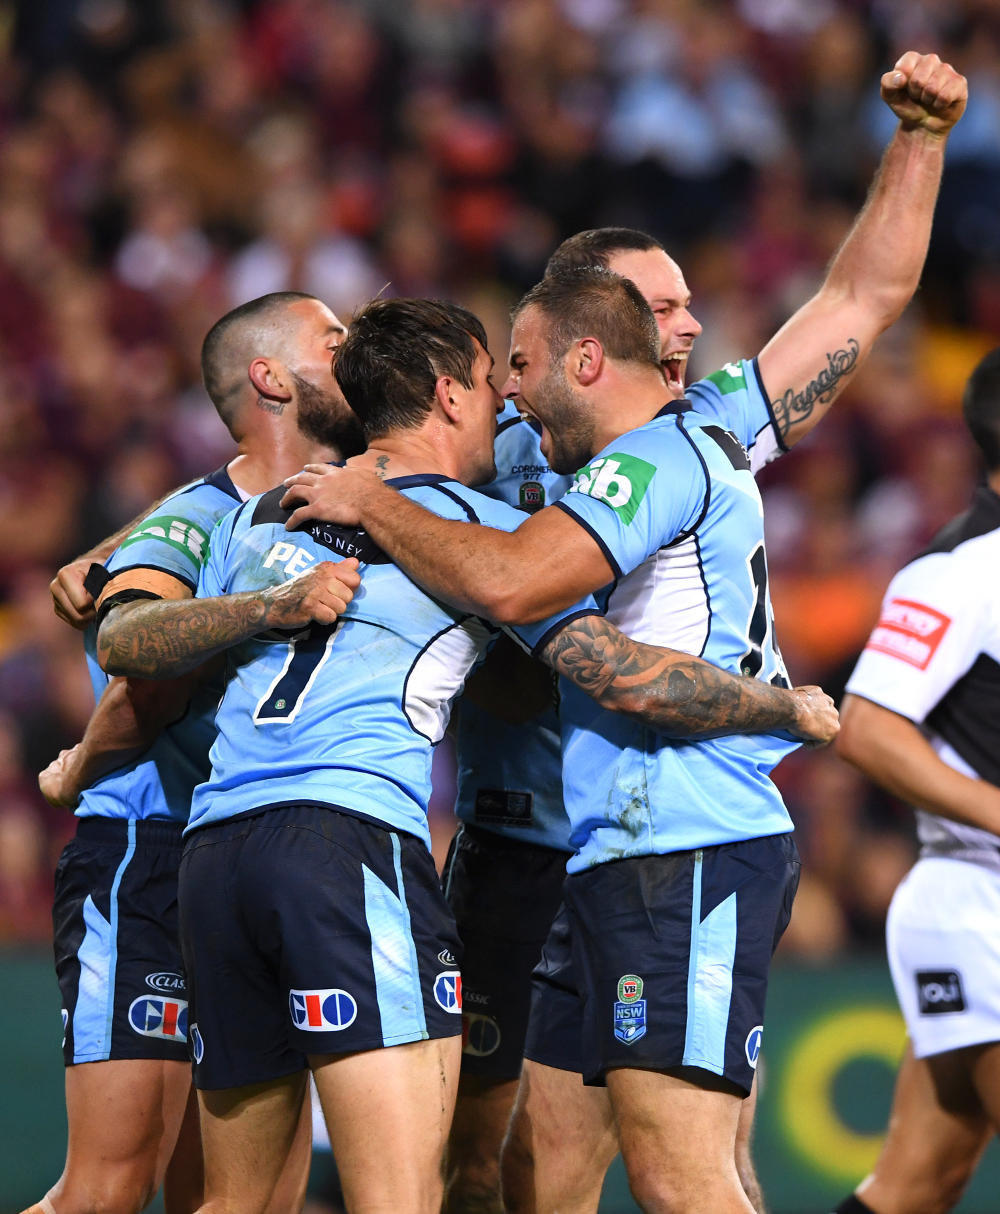 Queensland seals an astonishing come from behind win over NSW